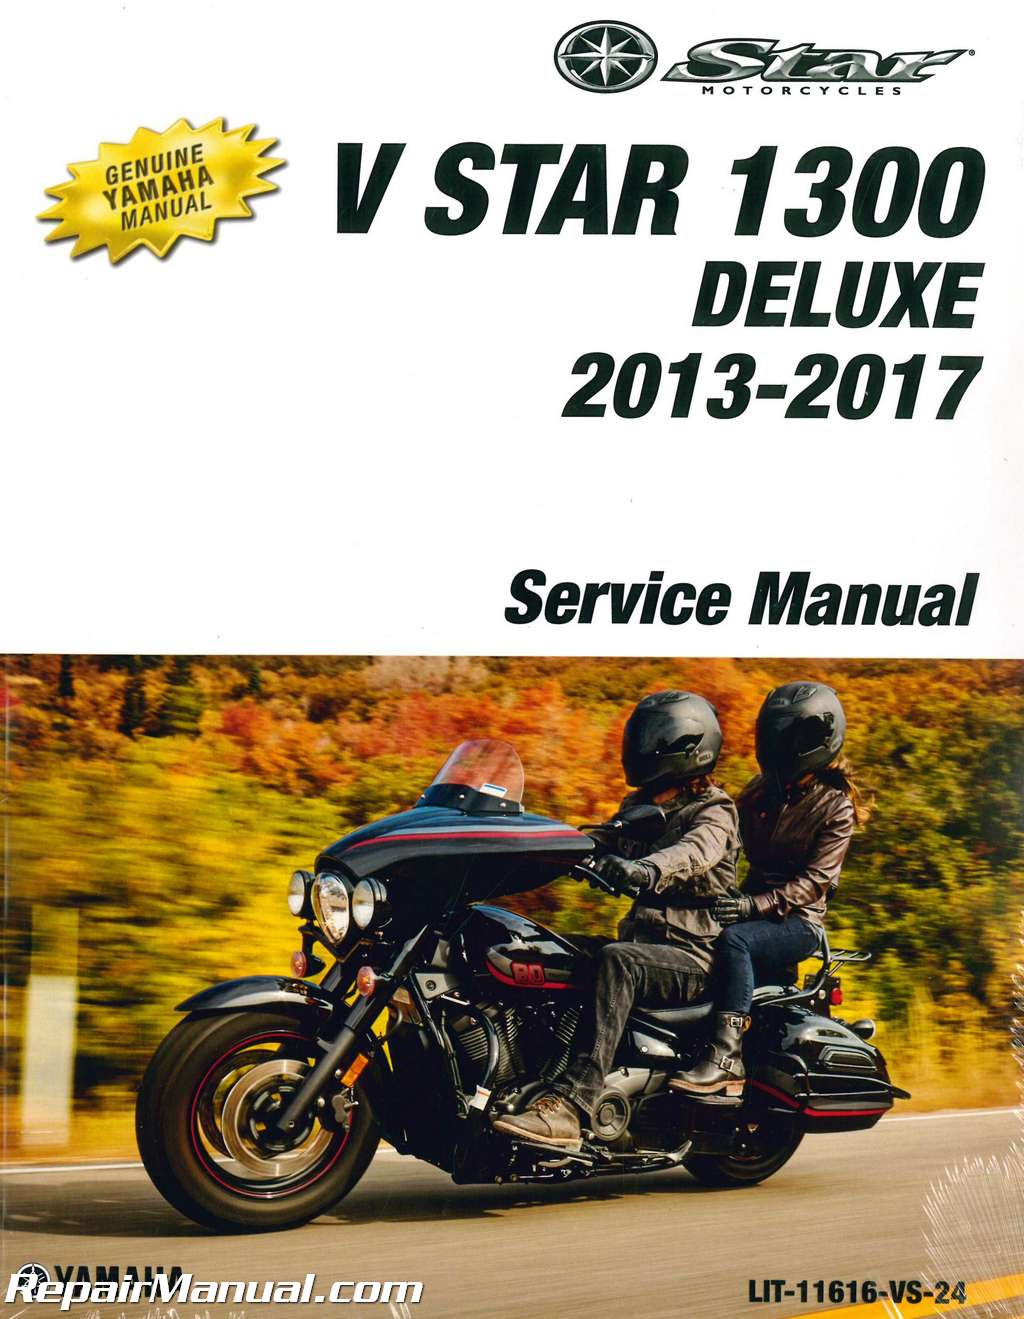 2013 2017 yamaha v star 1300 deluxe motorcycle service manual rh  repairmanual com yamaha v star 650 owners manual yamaha v star 1100 service  manual download